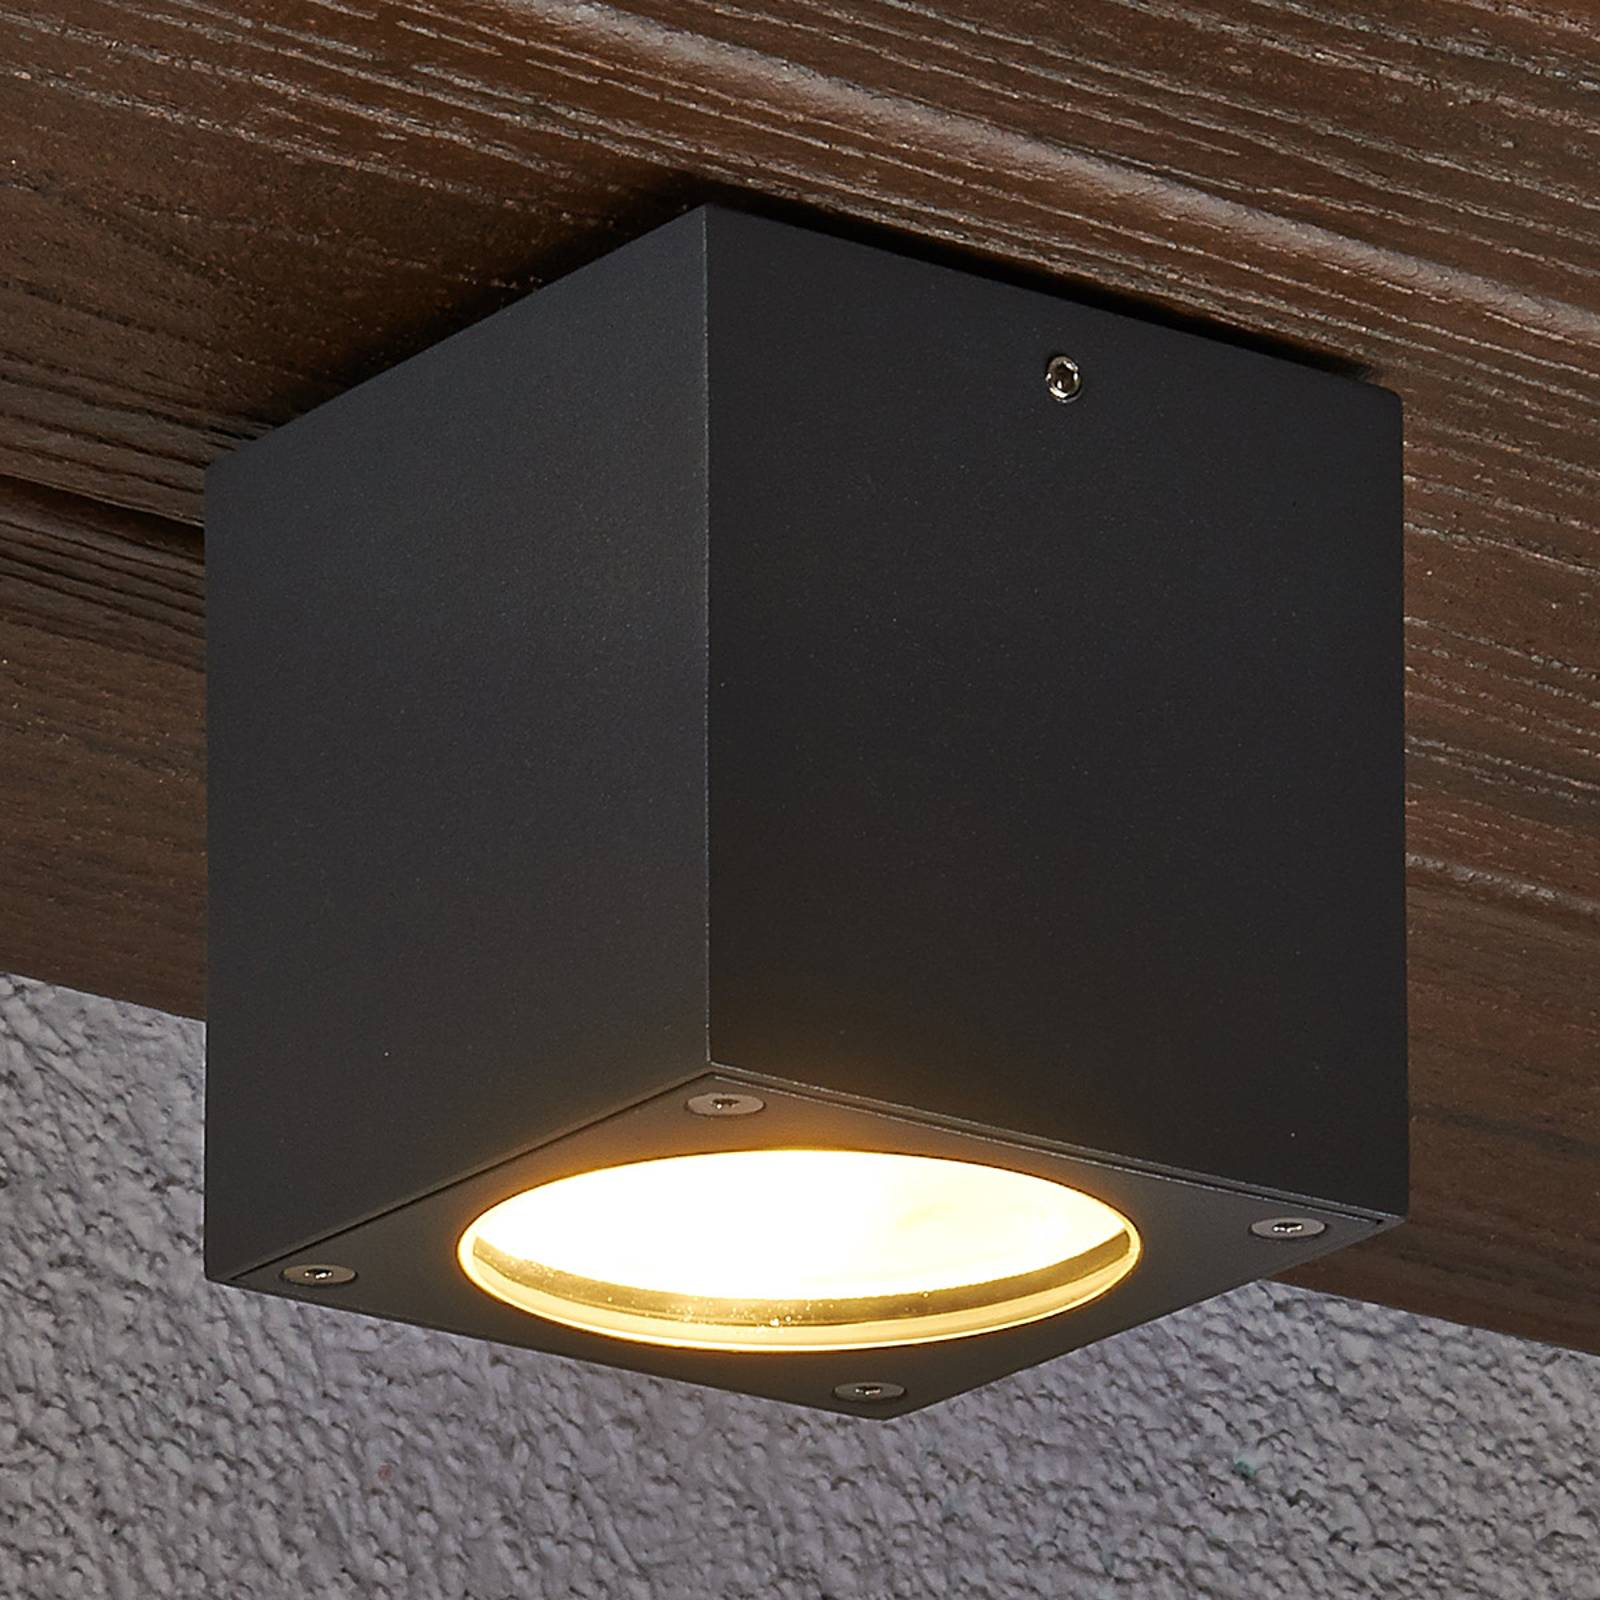 Rectangular LED ceiling light Meret for outdoors from Lucande